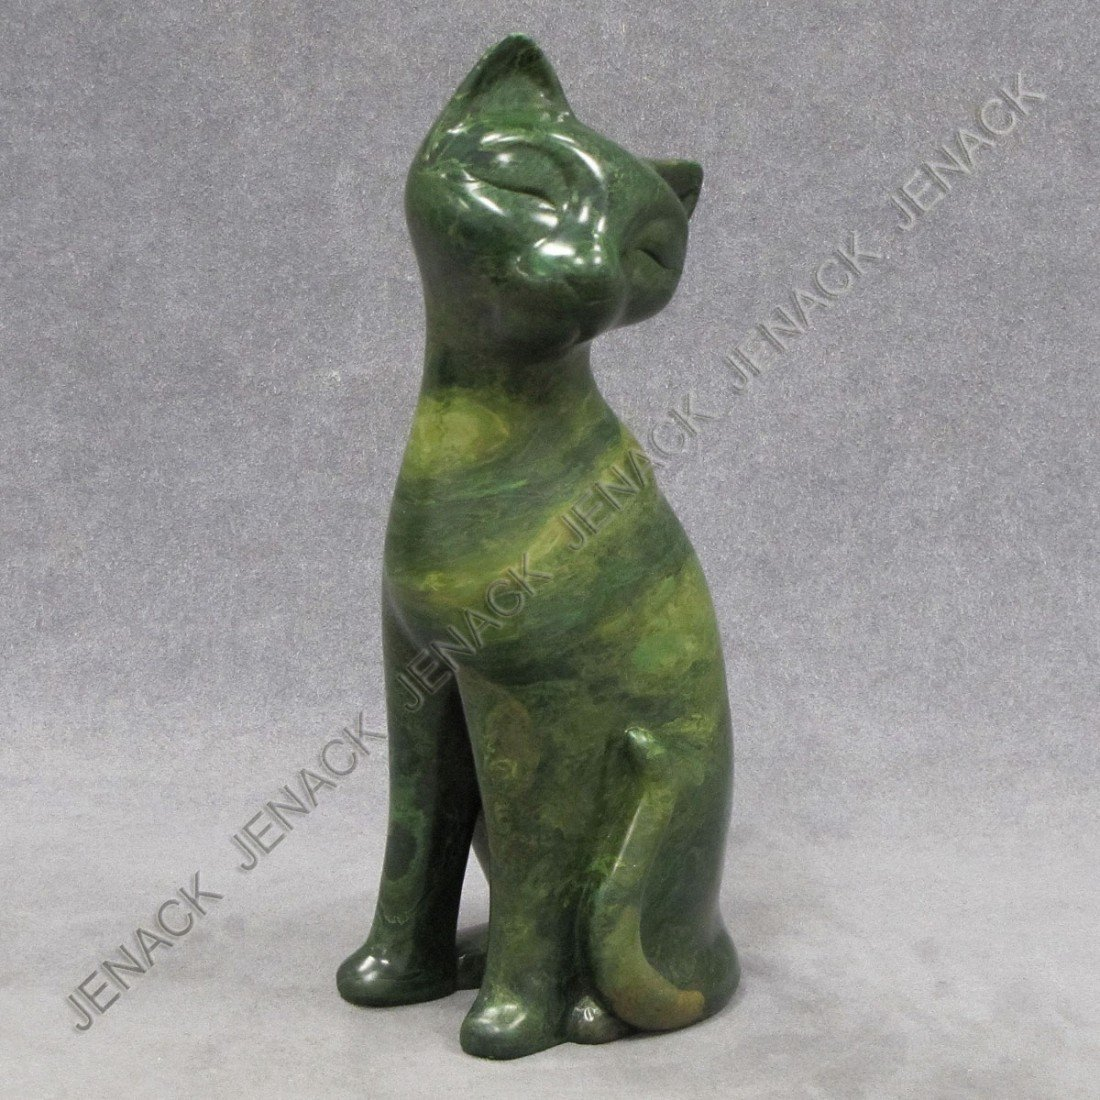 4: CARVED GREEN SOAPSTONE CAT, SIGNED J. MASANCA